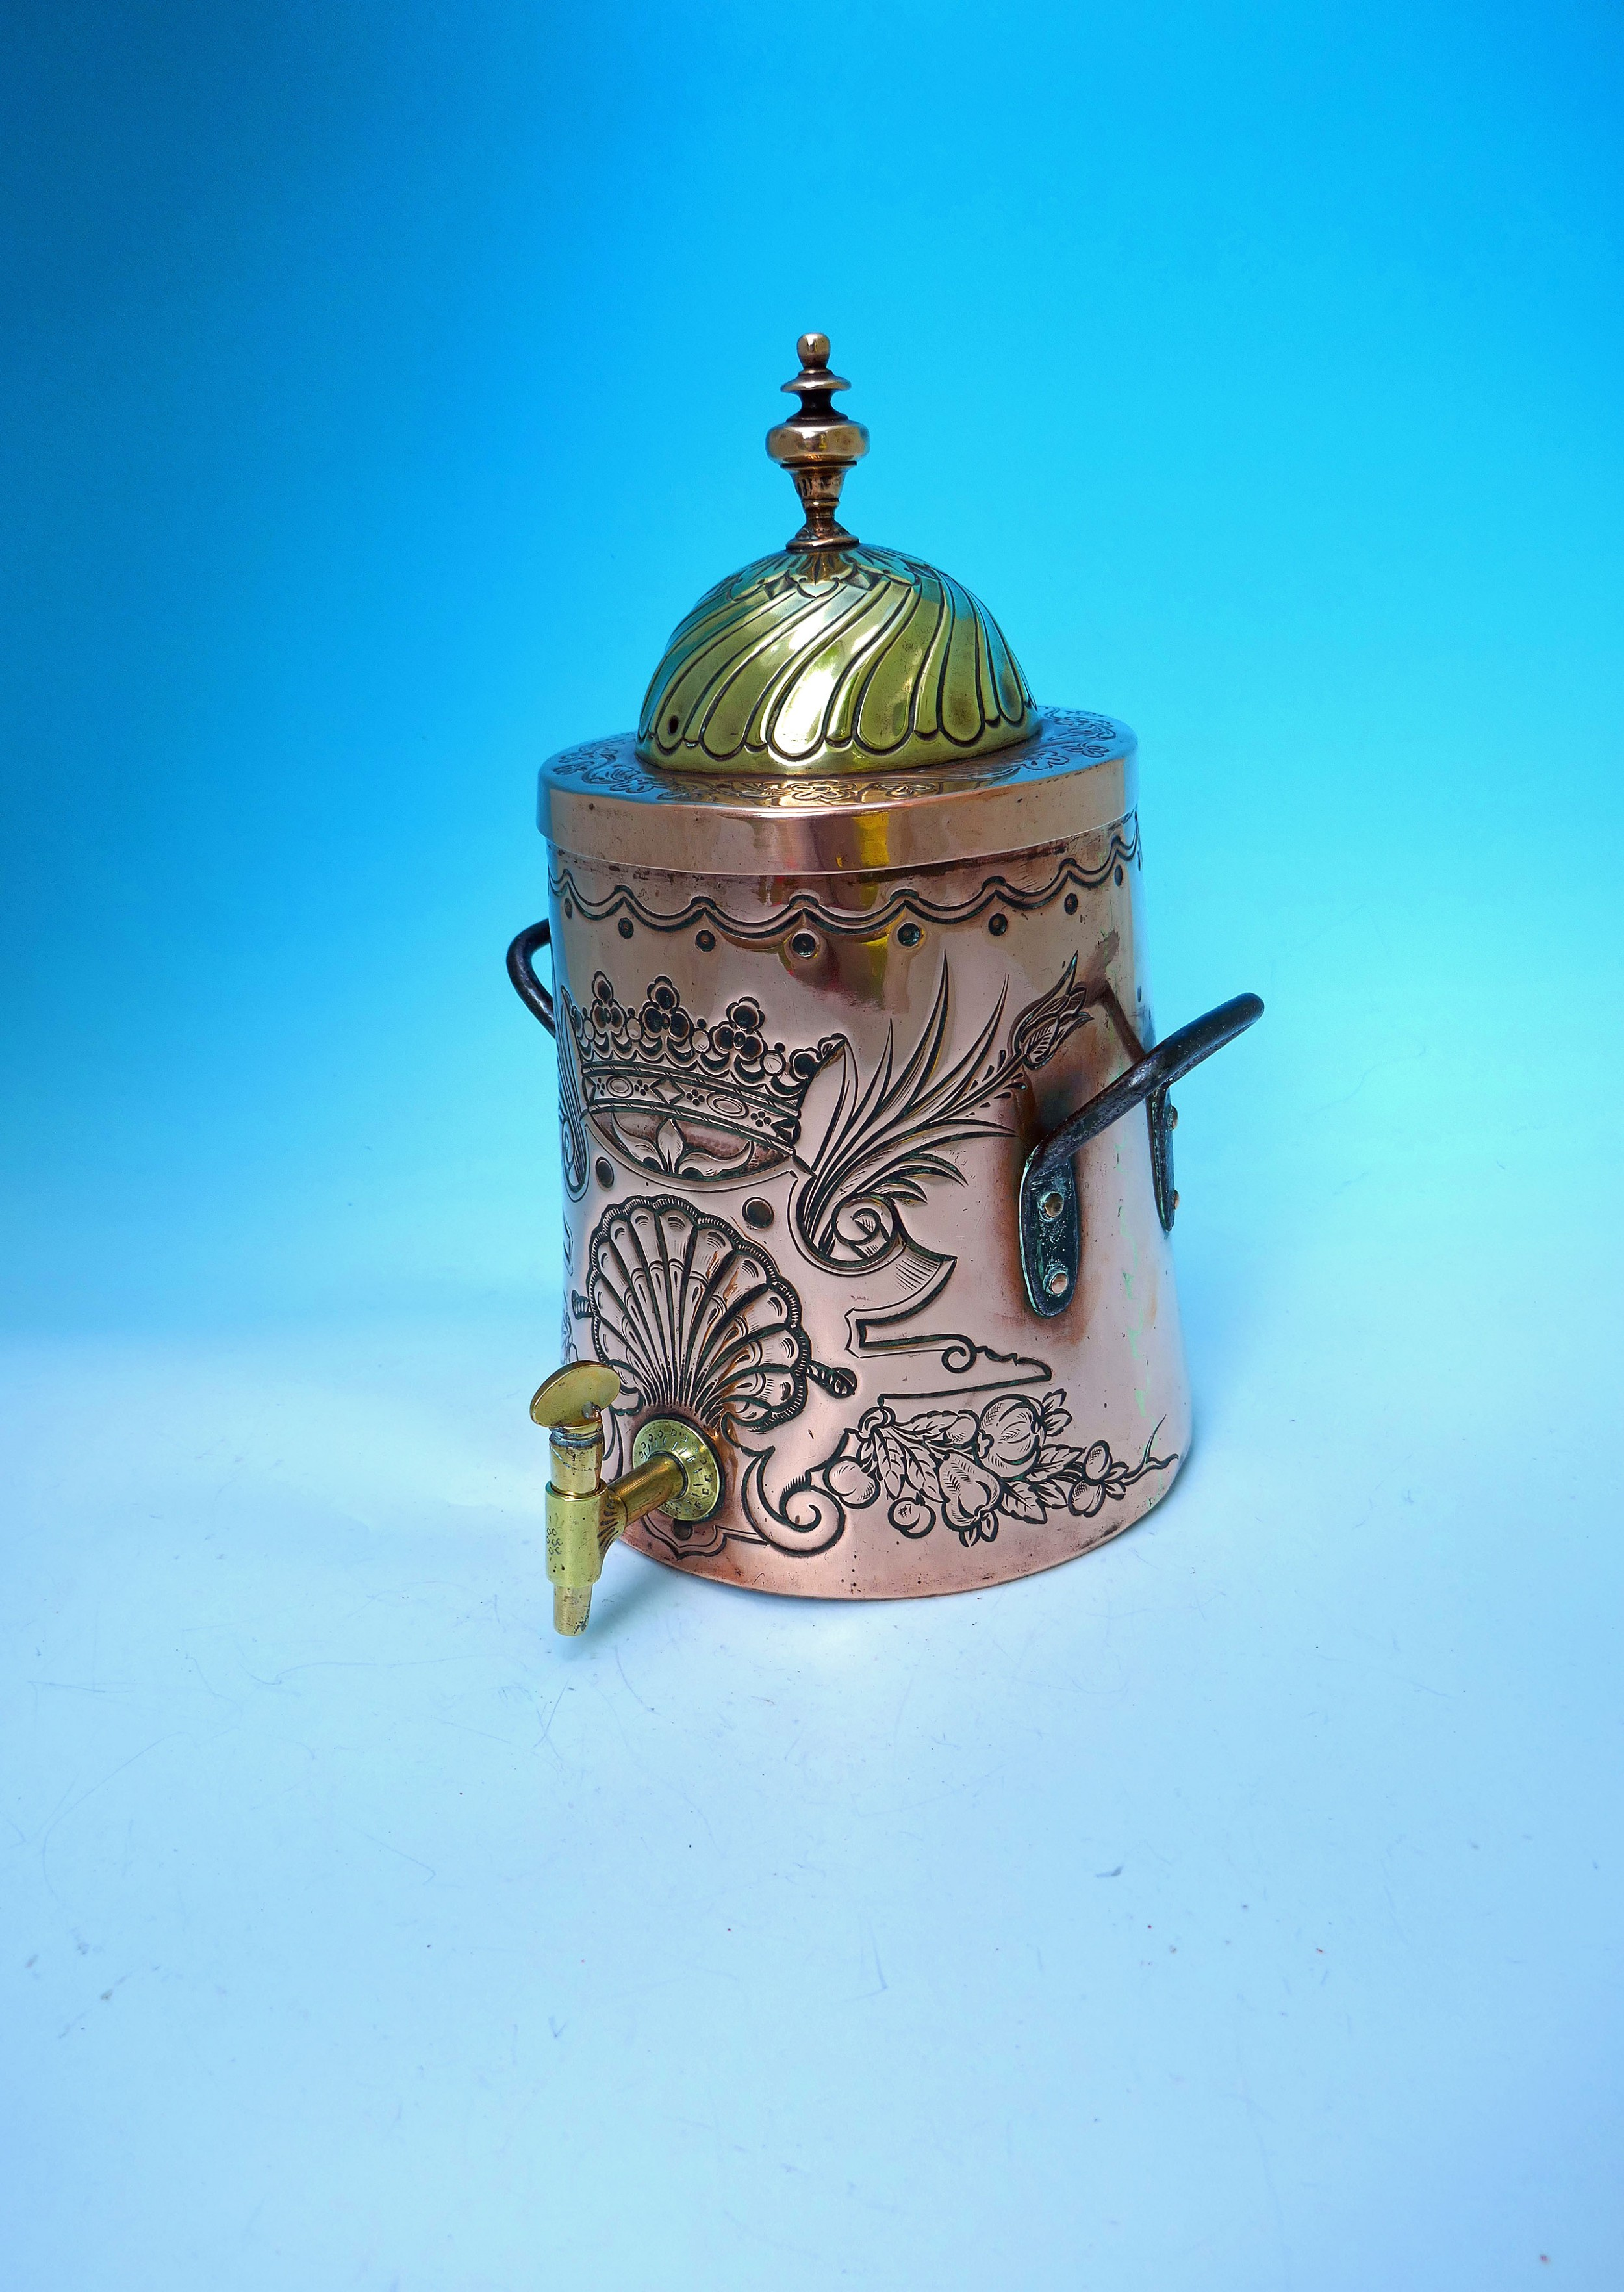 superb 18thc metalware copper brass repousse decorated water urn dutch c177090